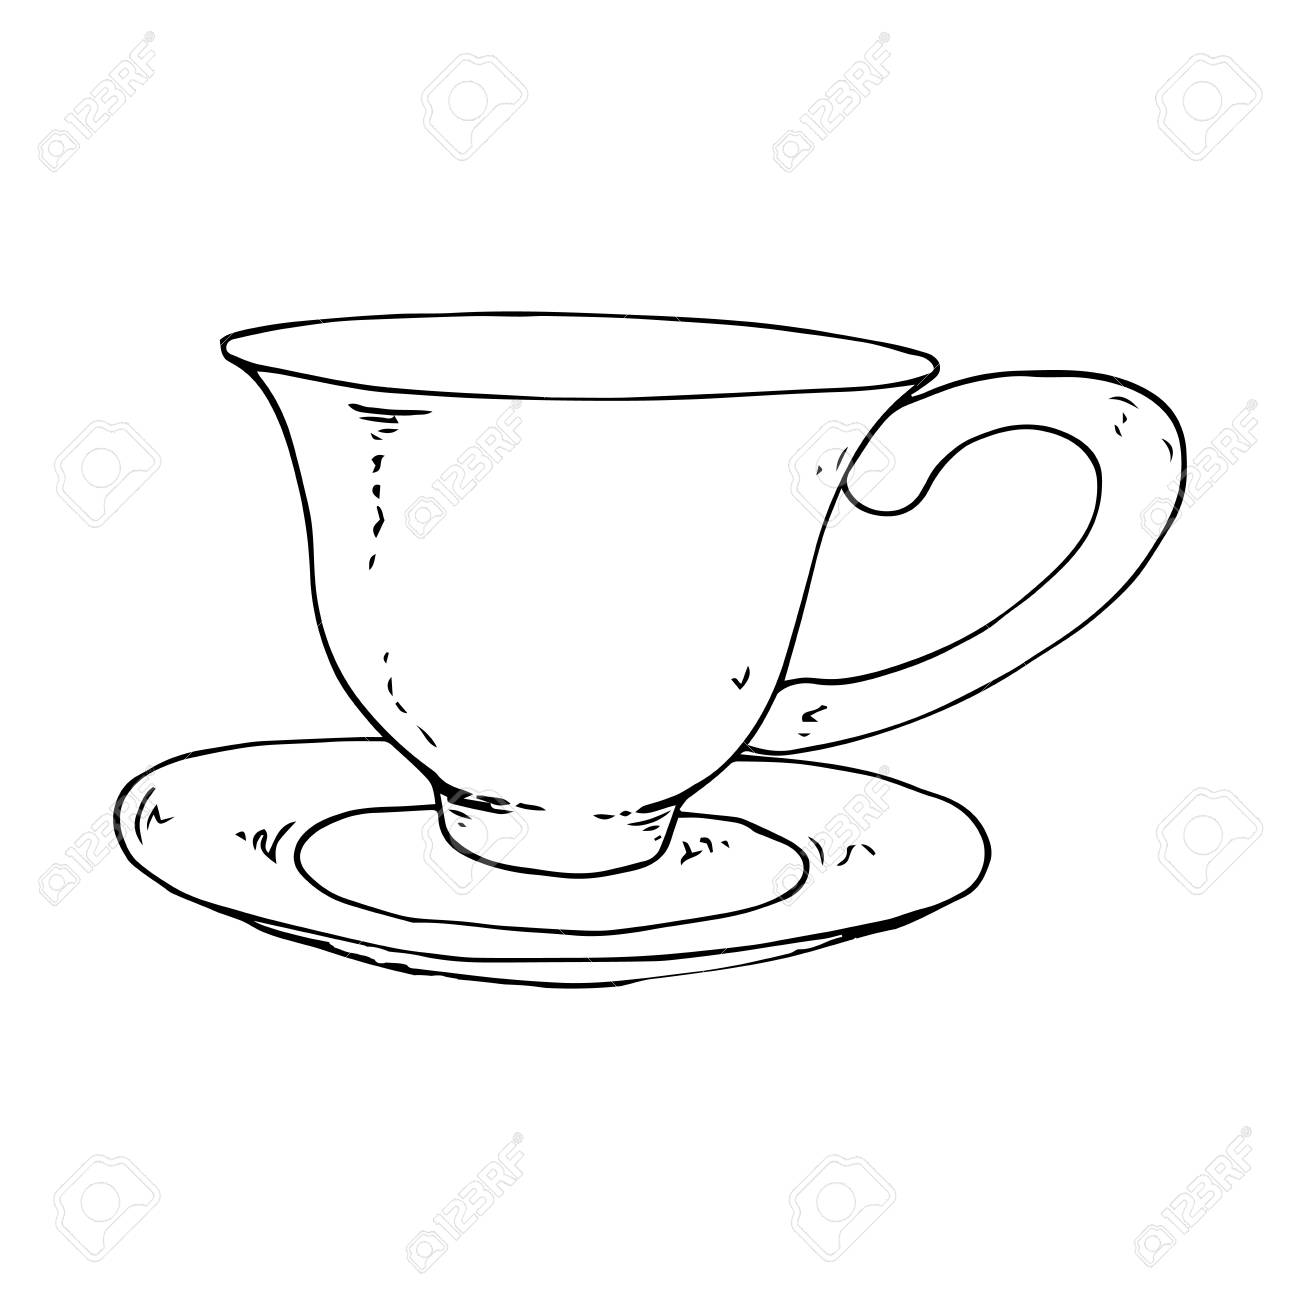 Tea Mug With A Saucer Vector Illustration Of A Tea Cup And Saucer Royalty Free Cliparts Vectors And Stock Illustration Image 113542448